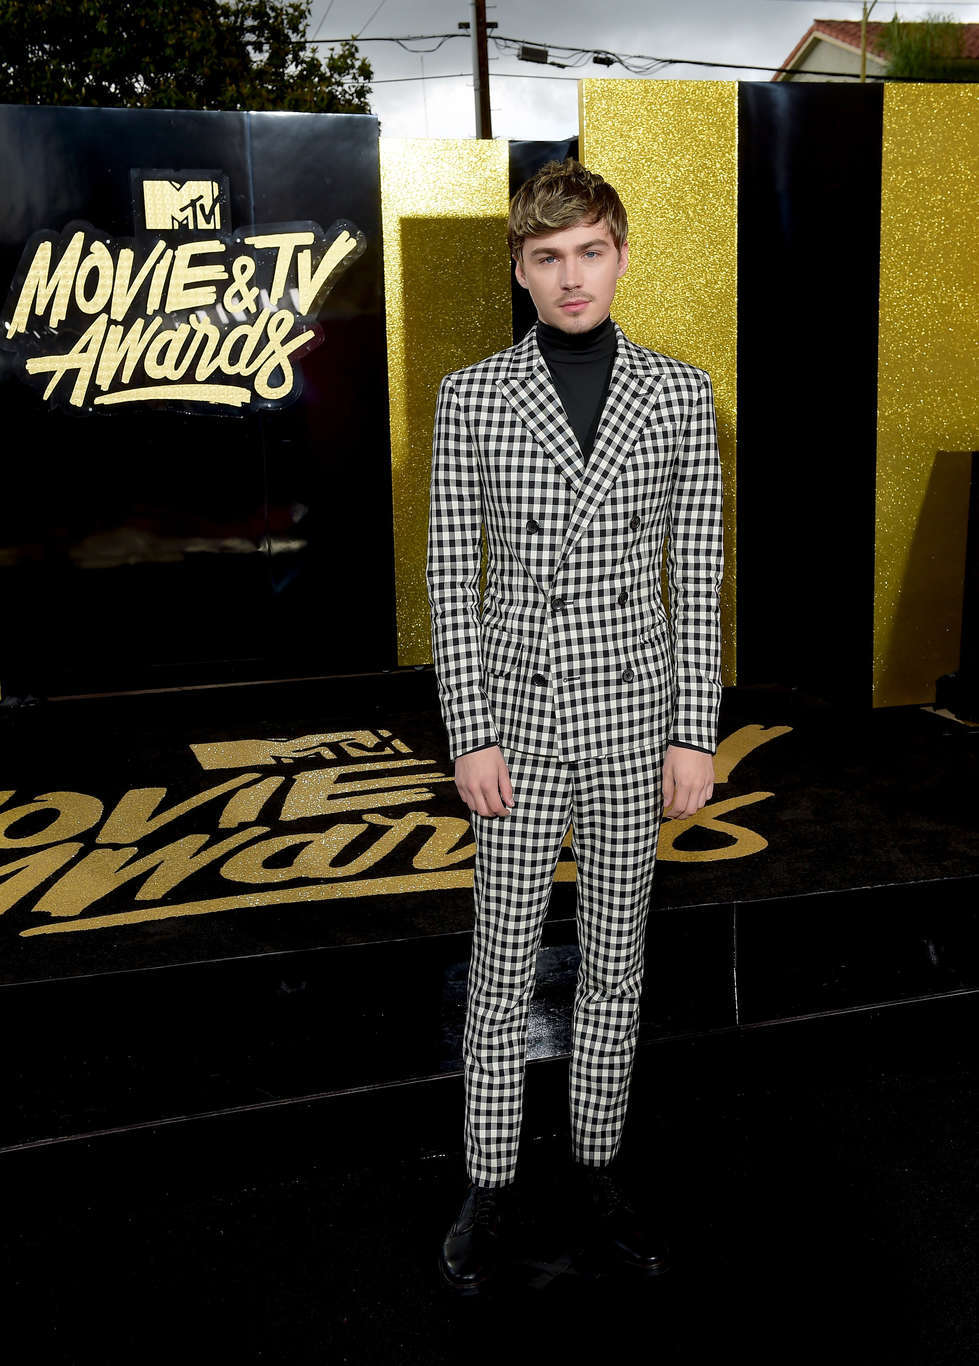 LOS ANGELES, CA - MAY 07: Actor Miles Heizer attends the 2017 MTV Movie And TV Awards at The Shrine Auditorium on May 7, 2017 in Los Angeles, California. (Photo by Matt Winkelmeyer/Getty Images)